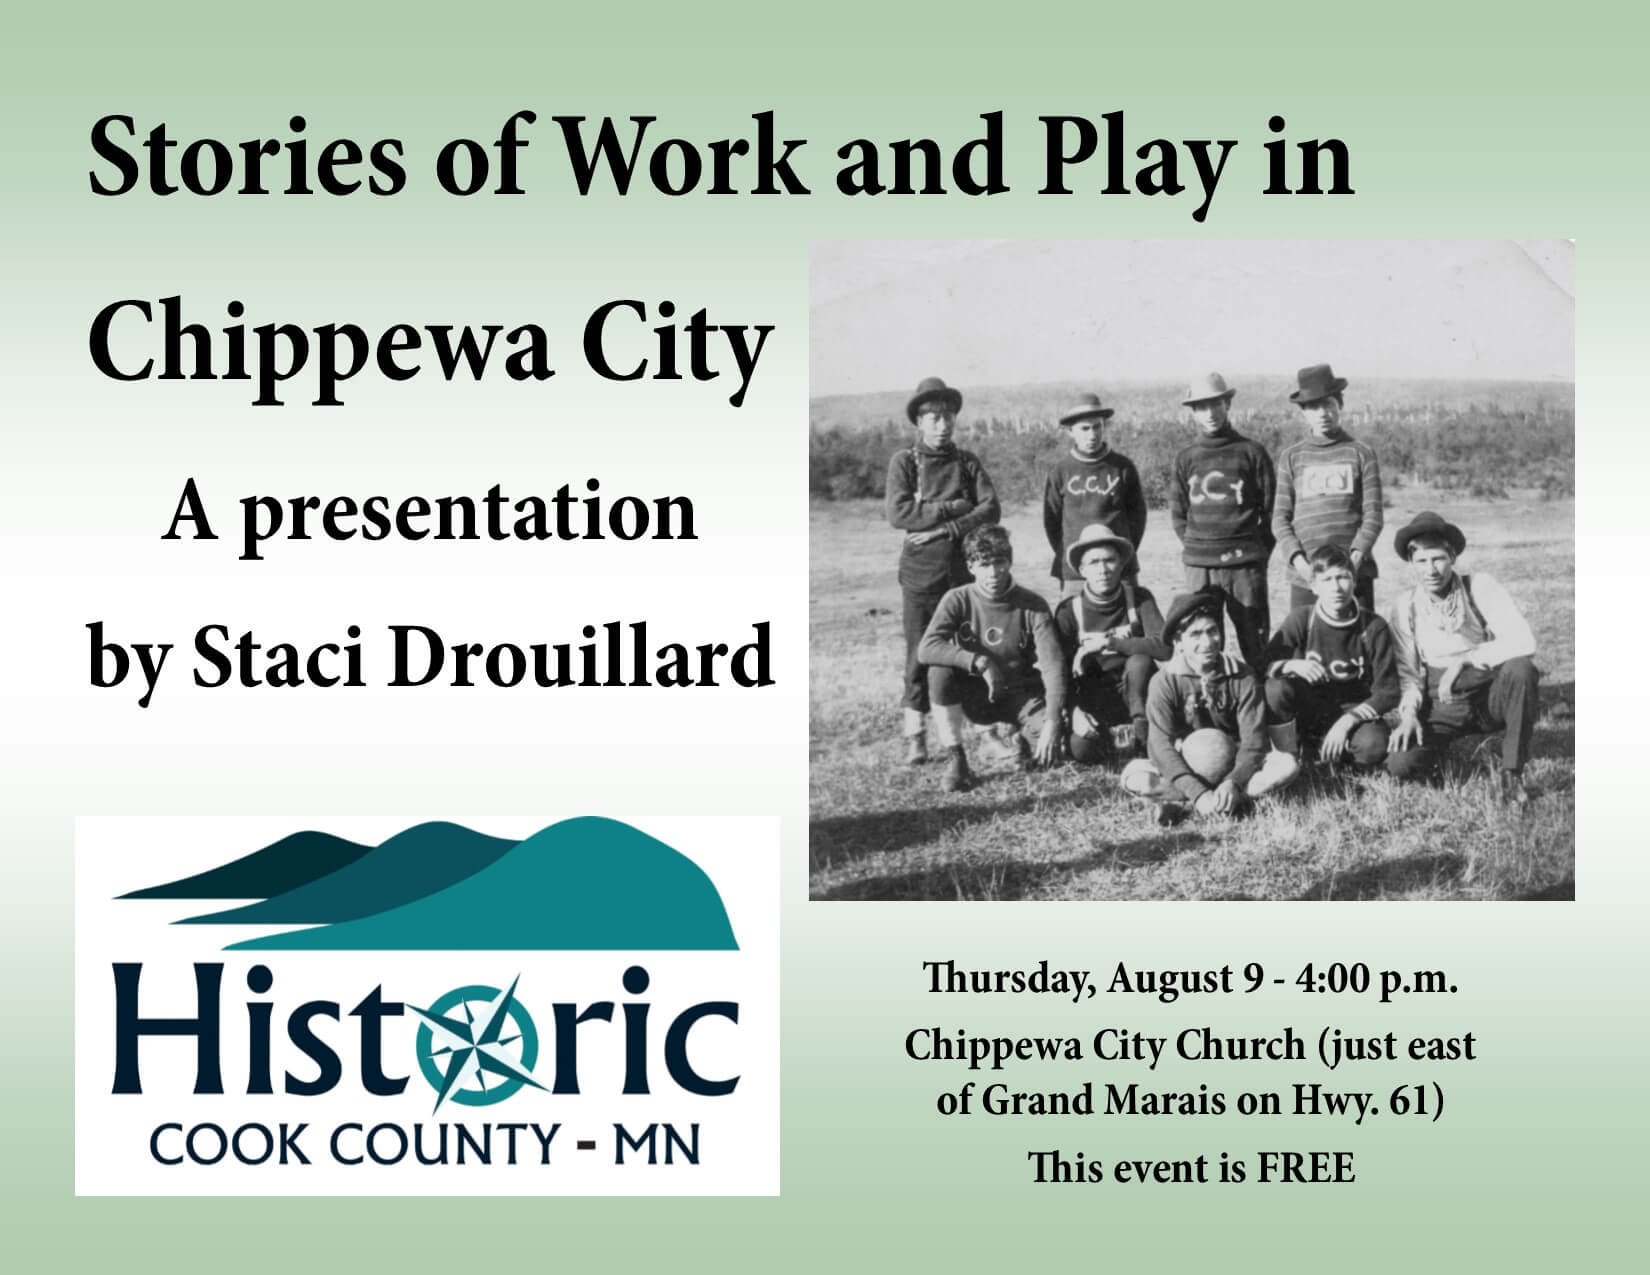 Stories of Work and Play in Chippewa City